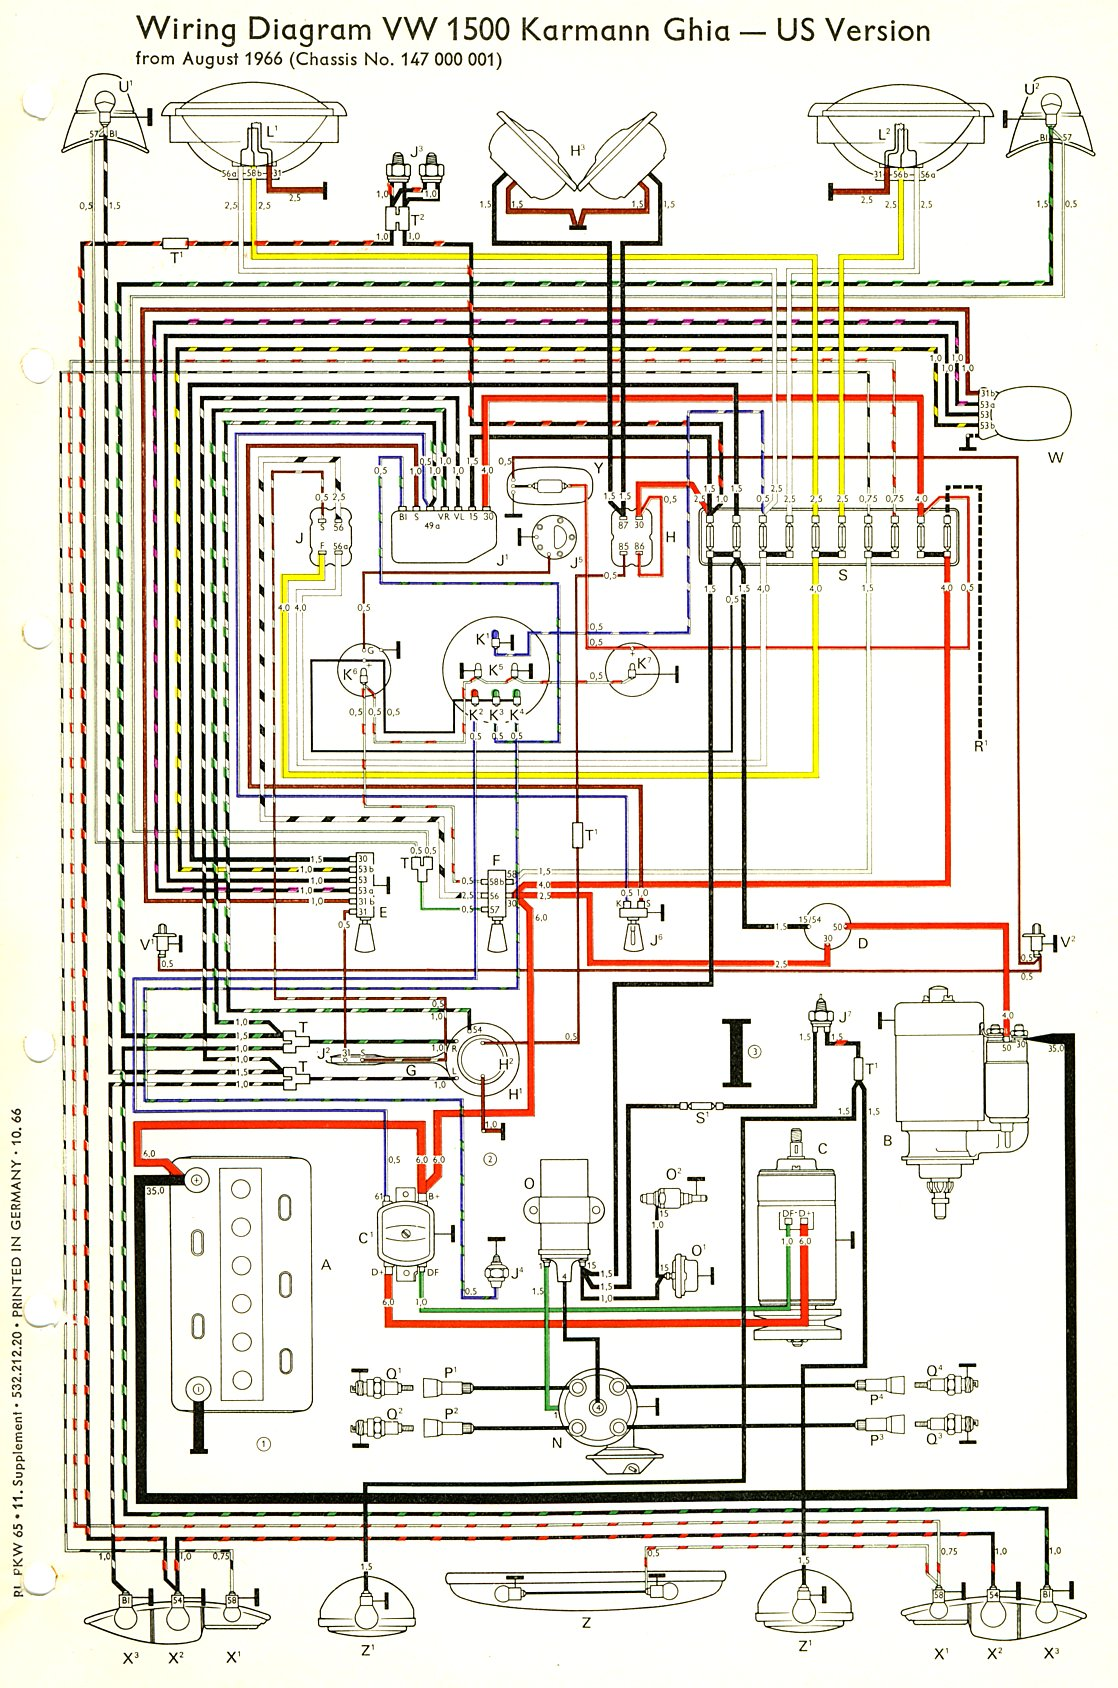 Awesome 1963 Porsche 356 Wiring Diagram Wiring Diagram Tutorial Wiring Cloud Cosmuggs Outletorg